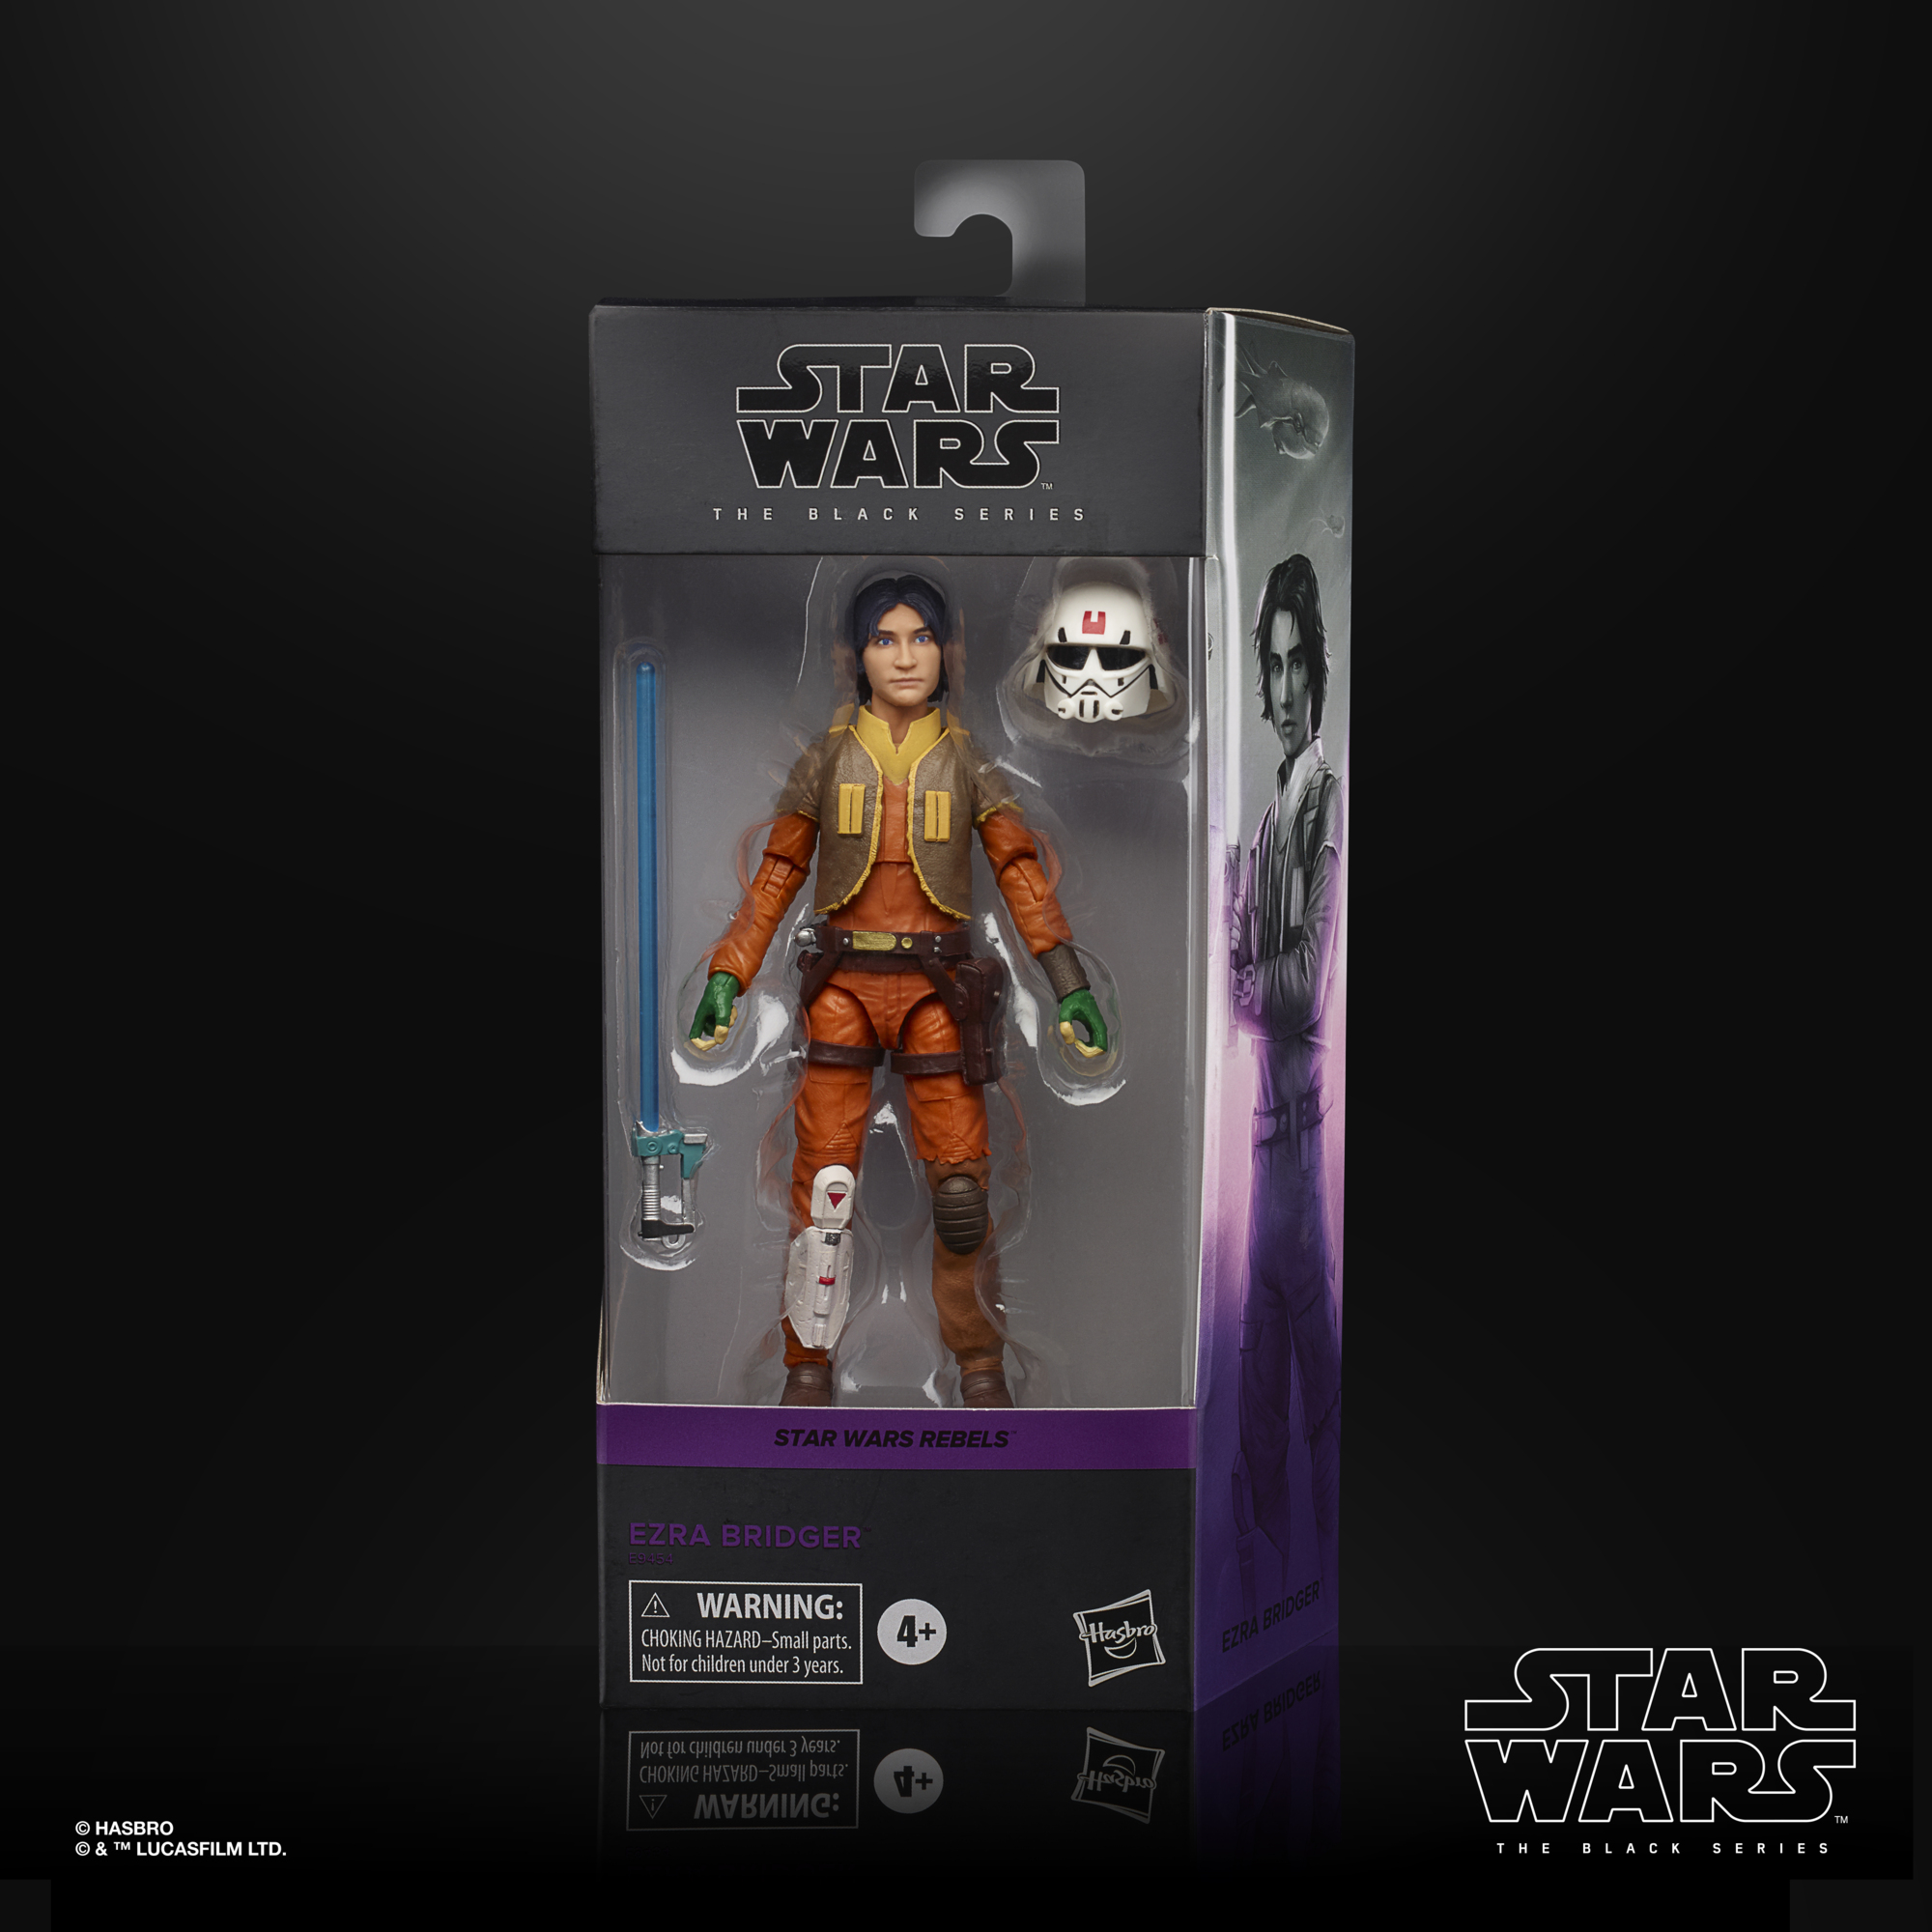 Star Wars The Black Series Ezra Bridger Action Figure 15cm E9452 5010993744138